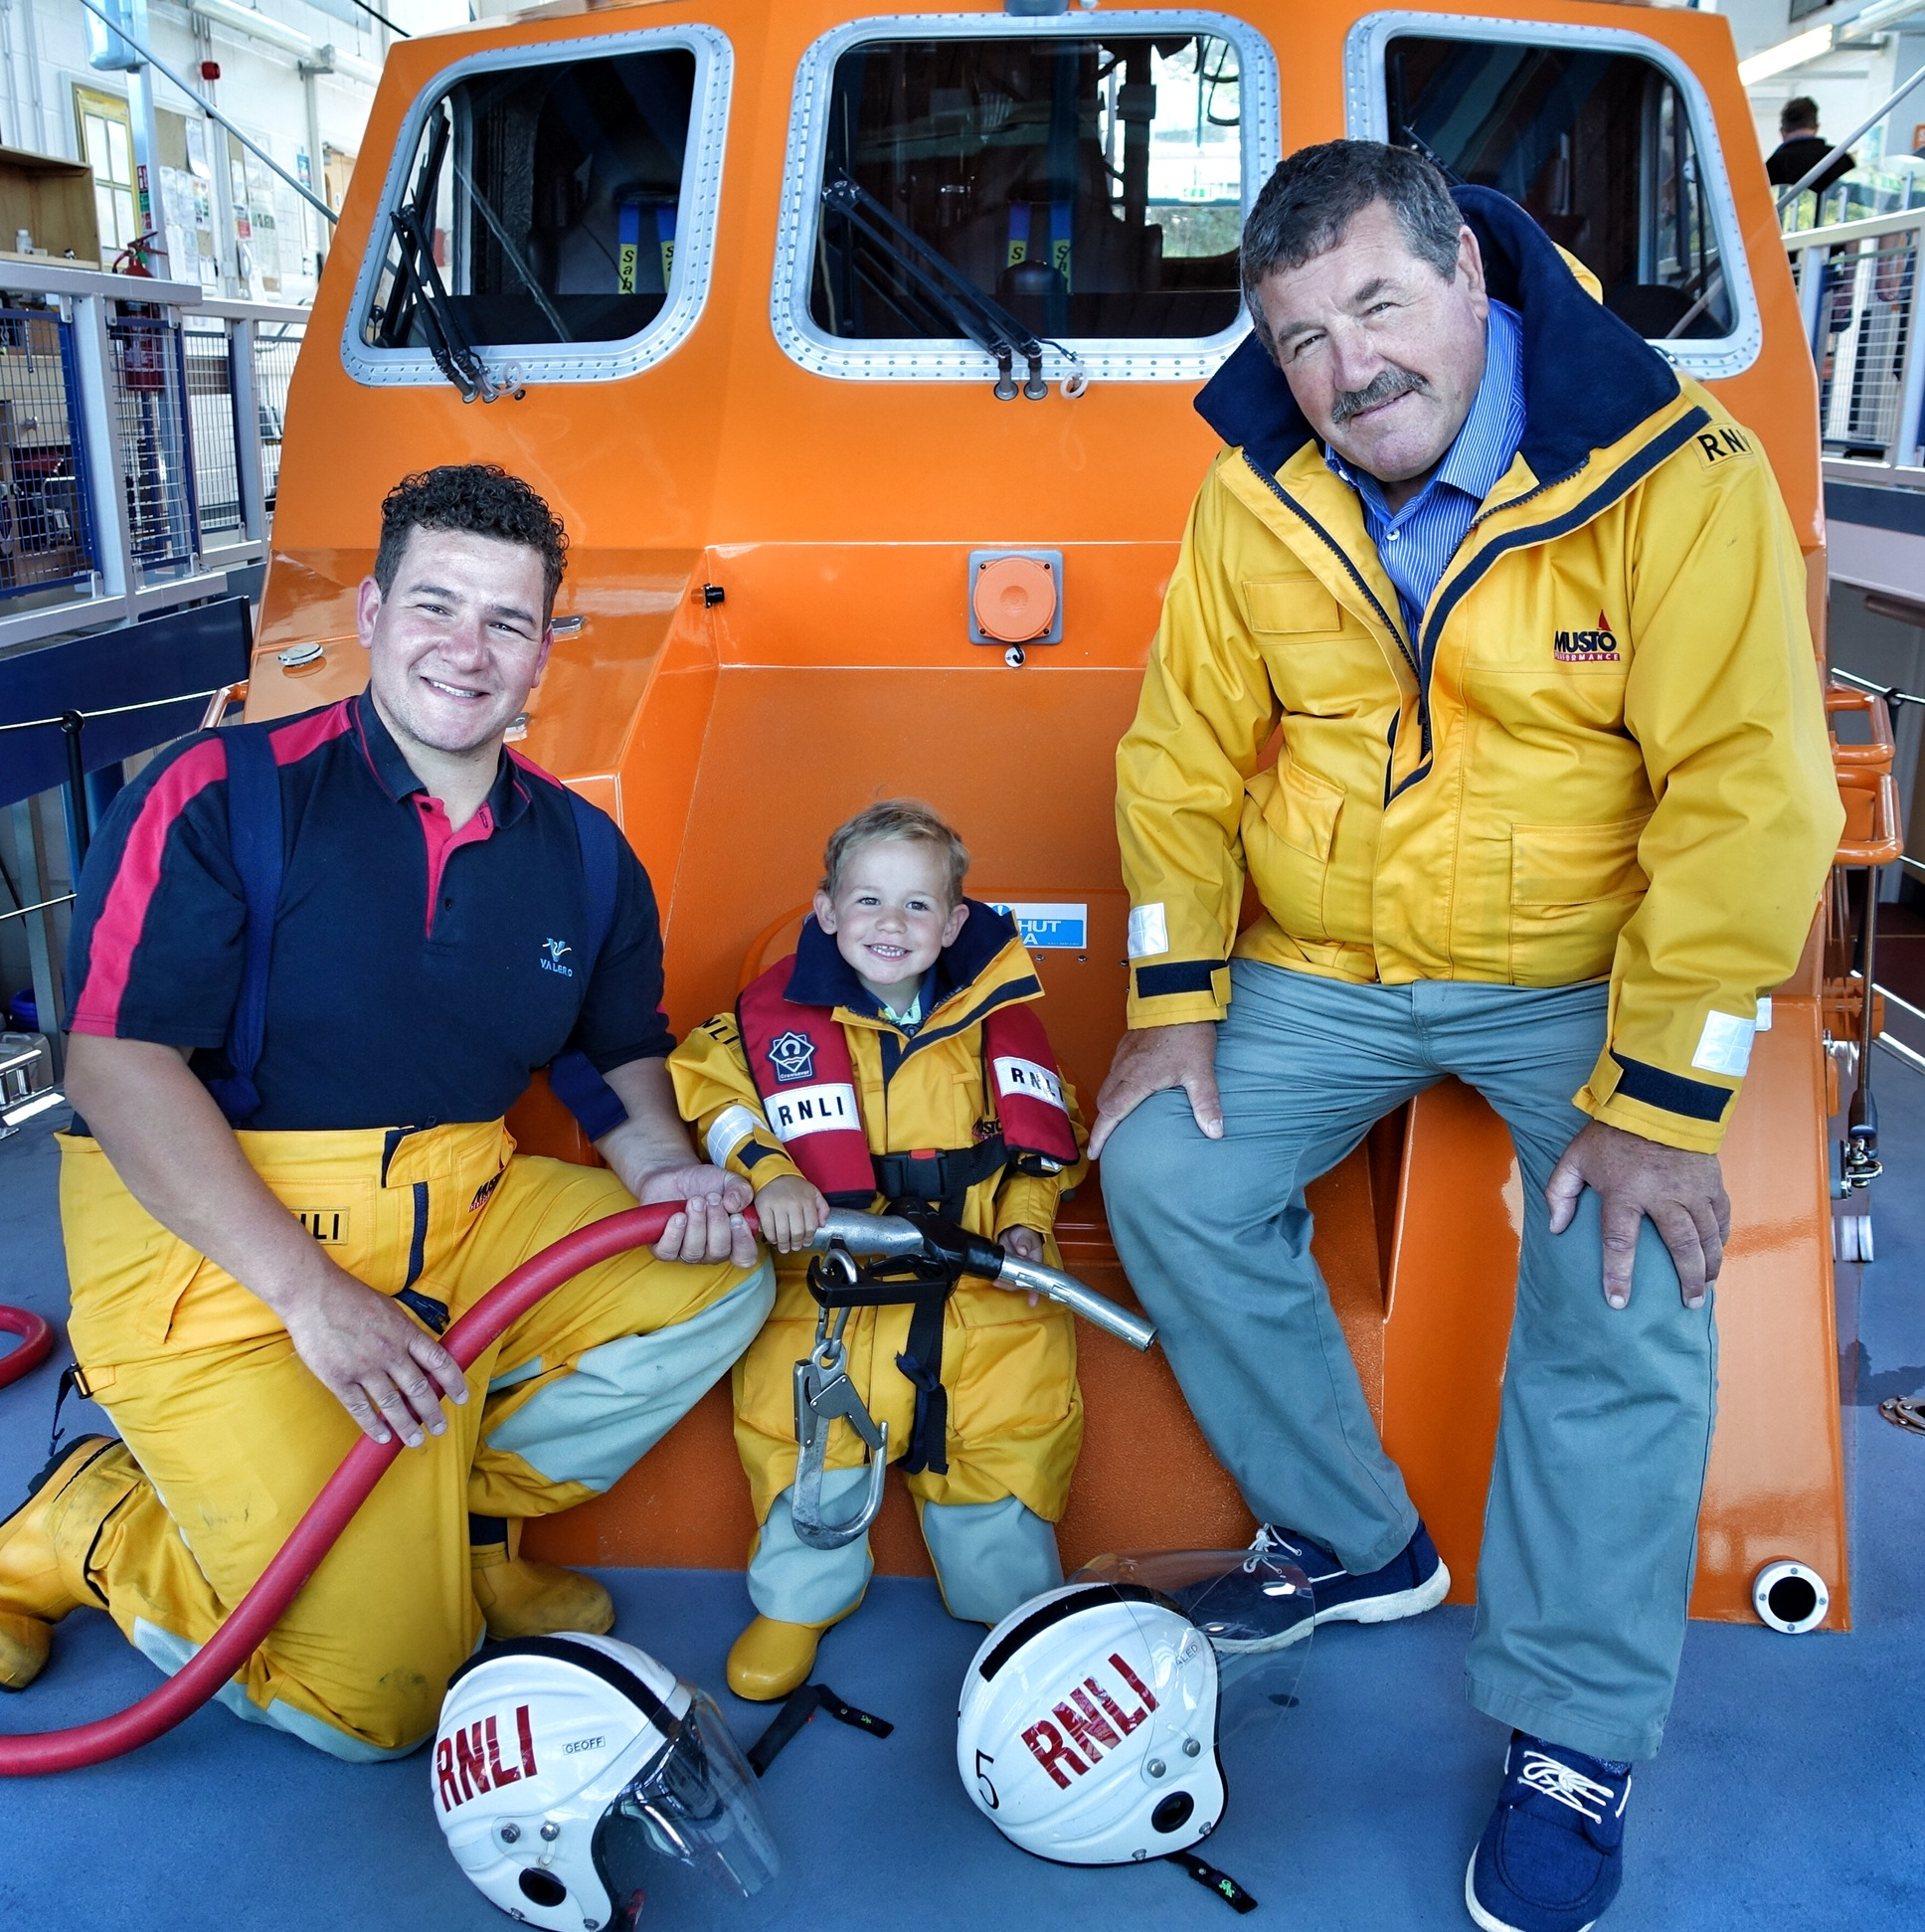 Pictured (left to right) on board Tenby RNLI's Tamar class lifeboat Haydn Miller are Tenby RNLI volunteer lifeboat crew member and Valero Pembroke Refinery worker Geoffrey Martin, his father and Tenby RNLI Deputy Launching Authority Geoffrey Martin and his two-year-old grandson Geoffrey Martin. Credit: RNLI/Tenby